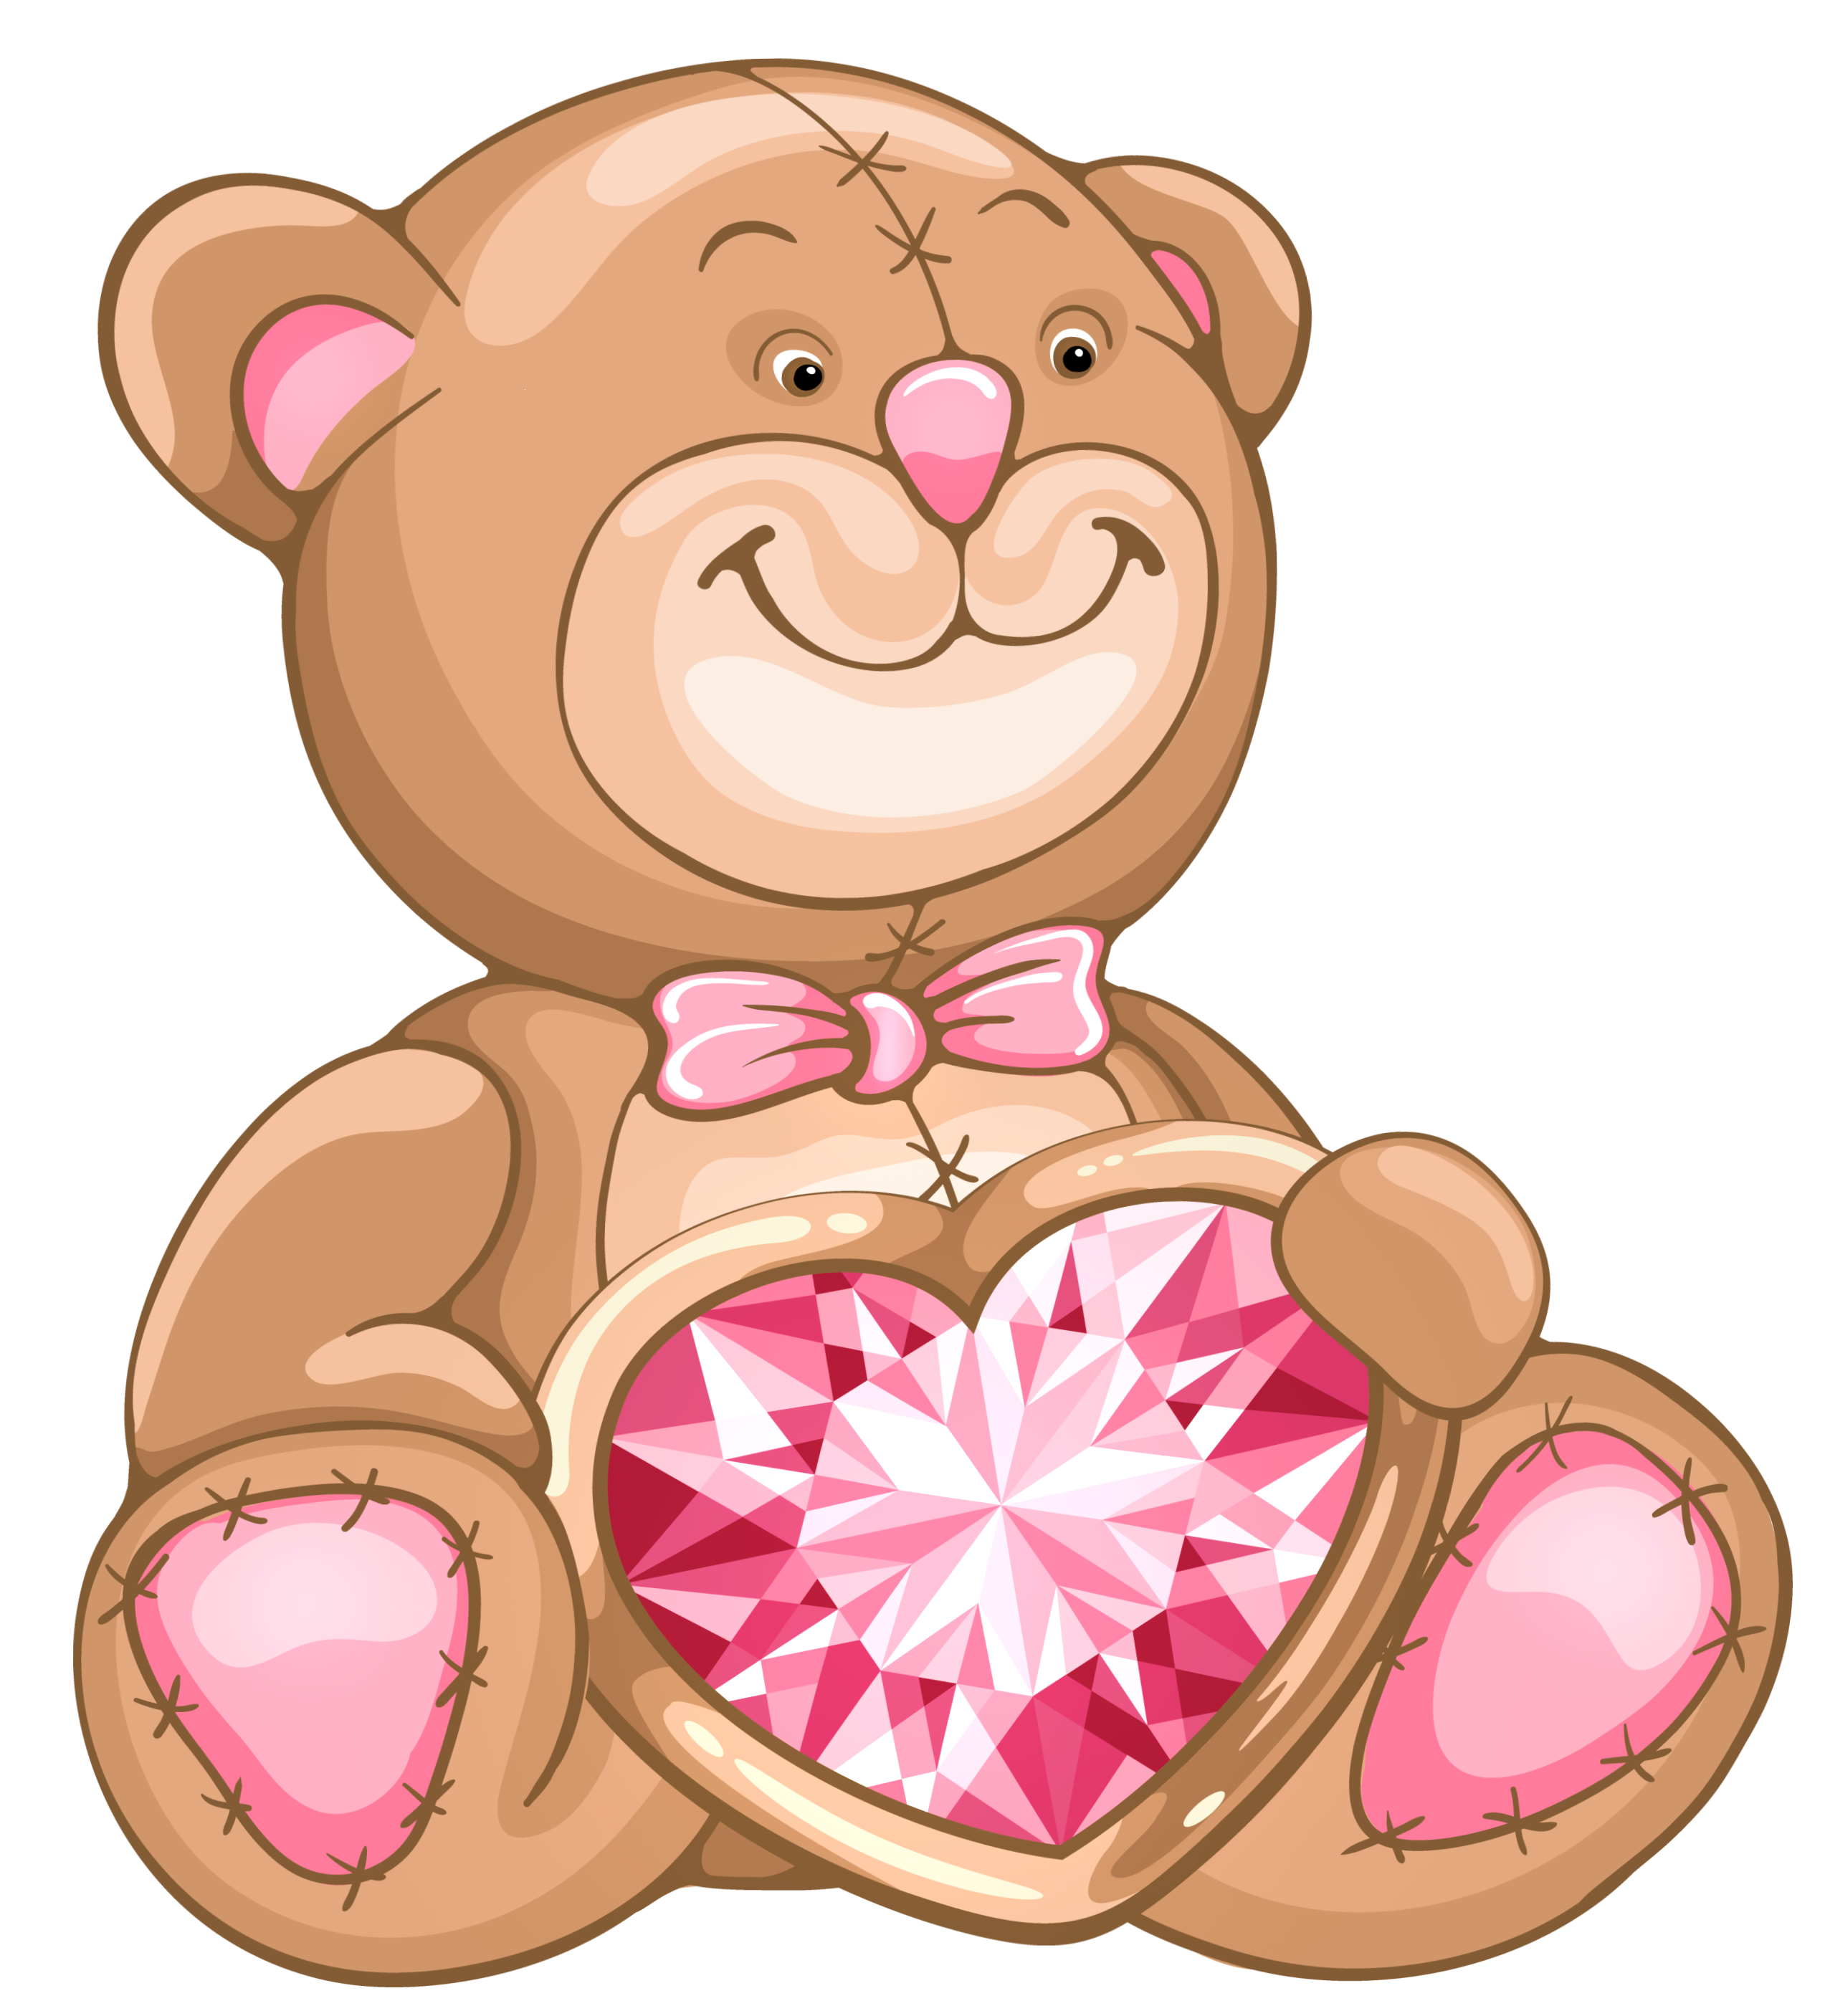 Transparent teddy with diamond. Clipart bear heart